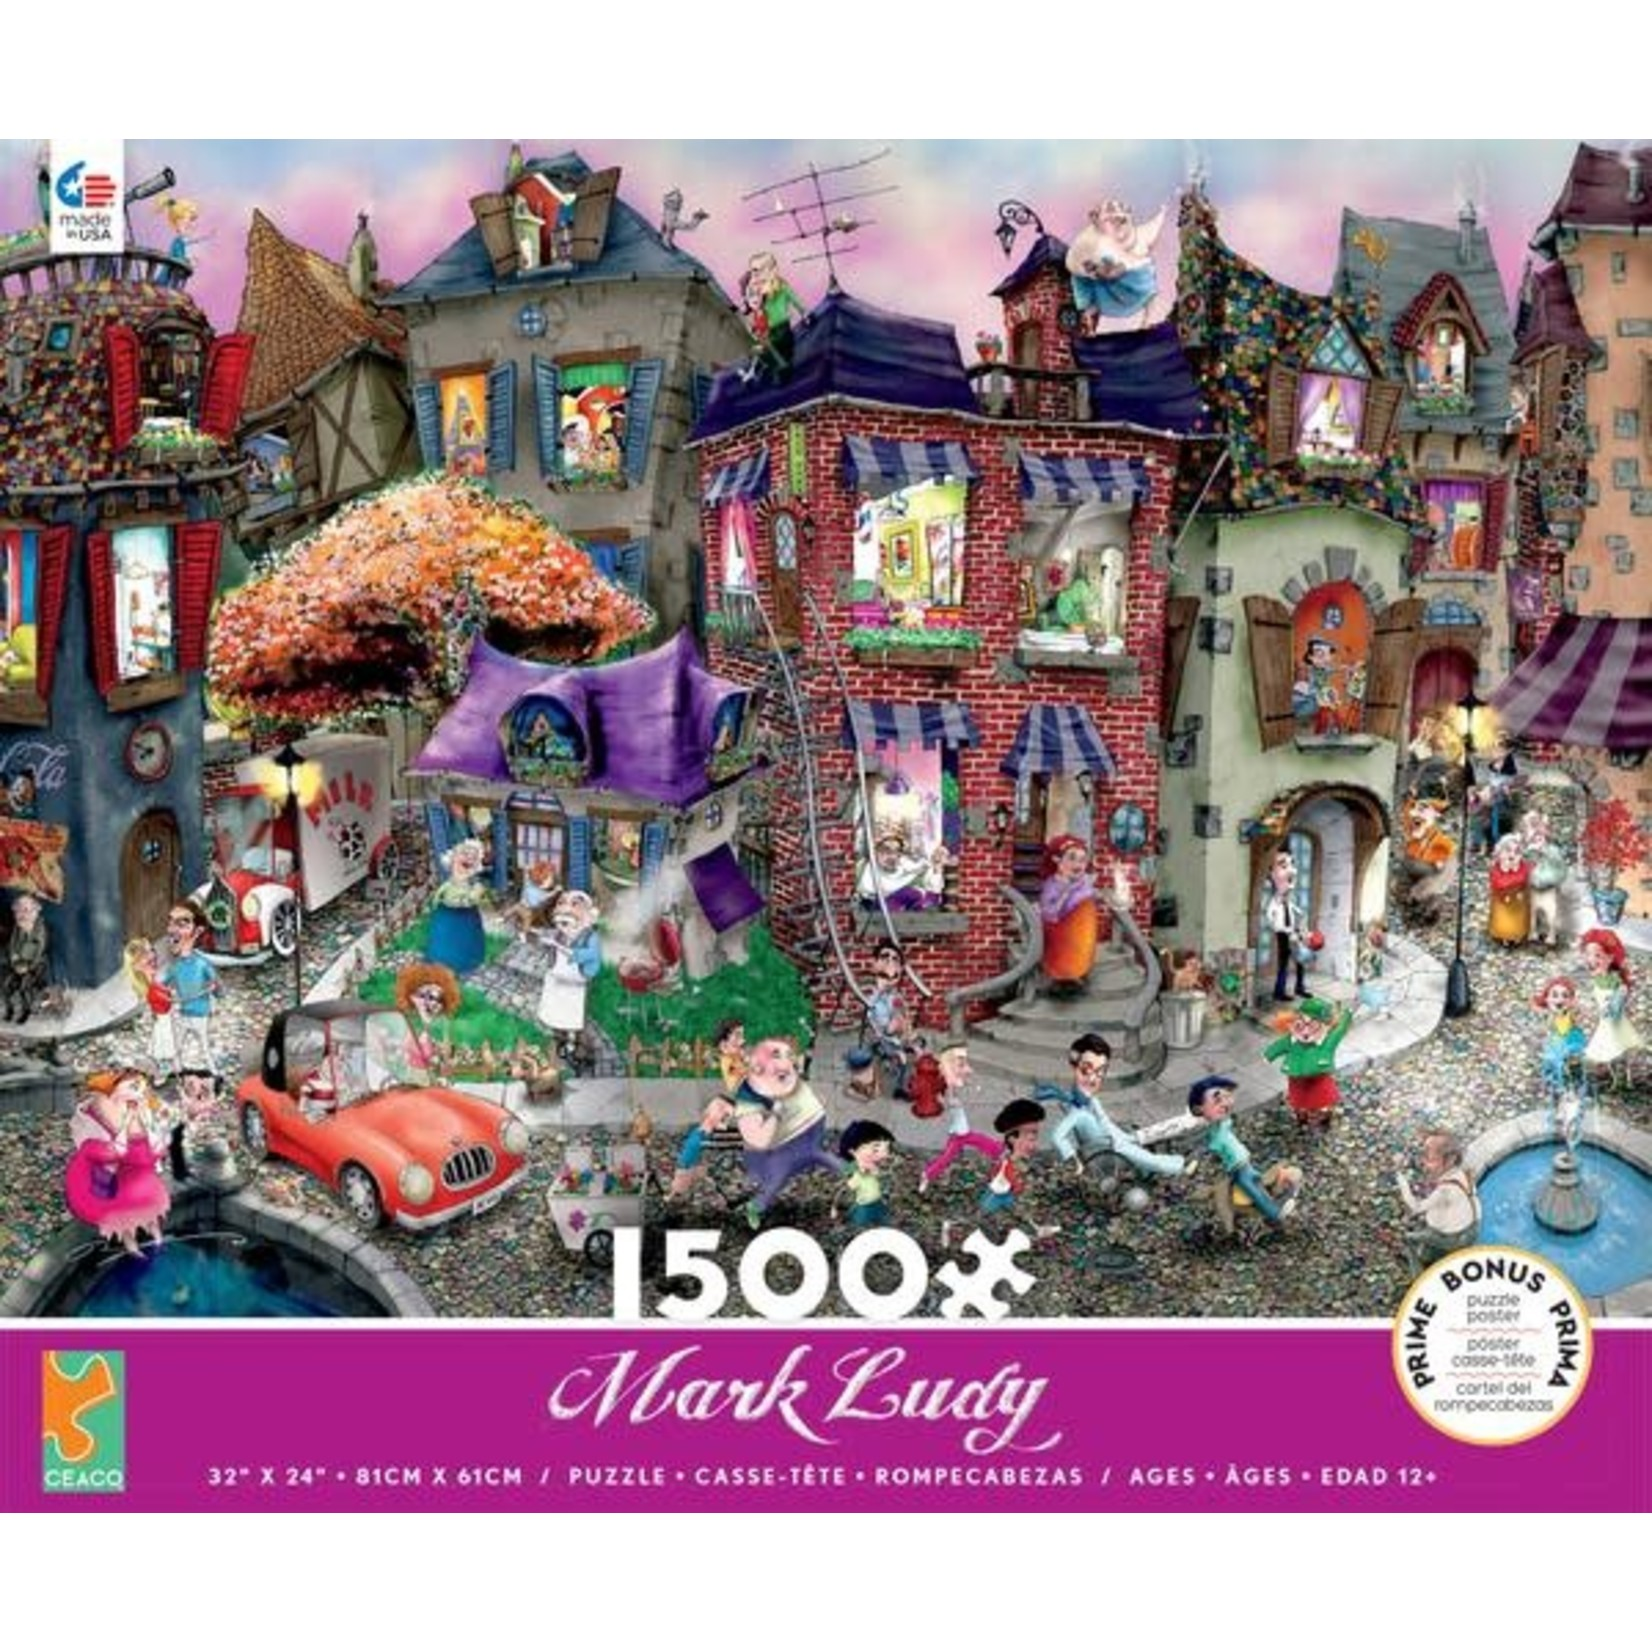 CEACO Mark Ludy 1500pc